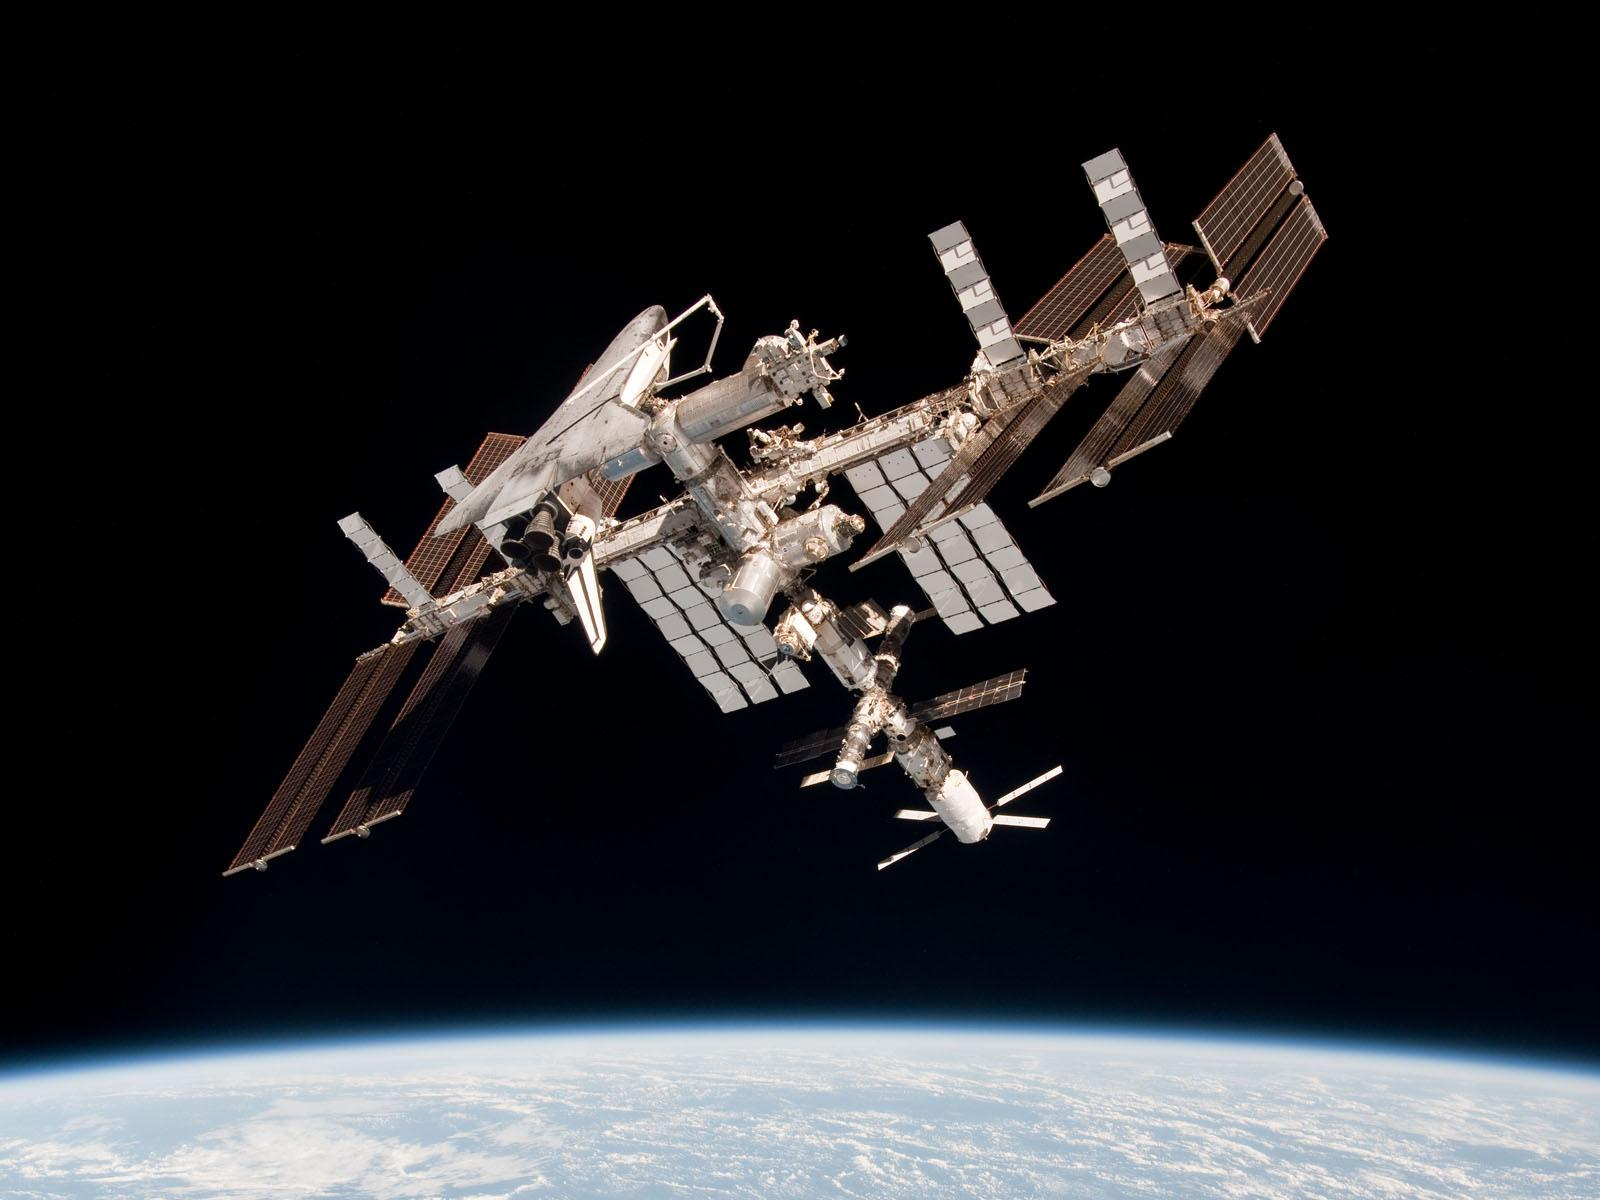 Space in Images - 2011 - 06 - The International Space Station with